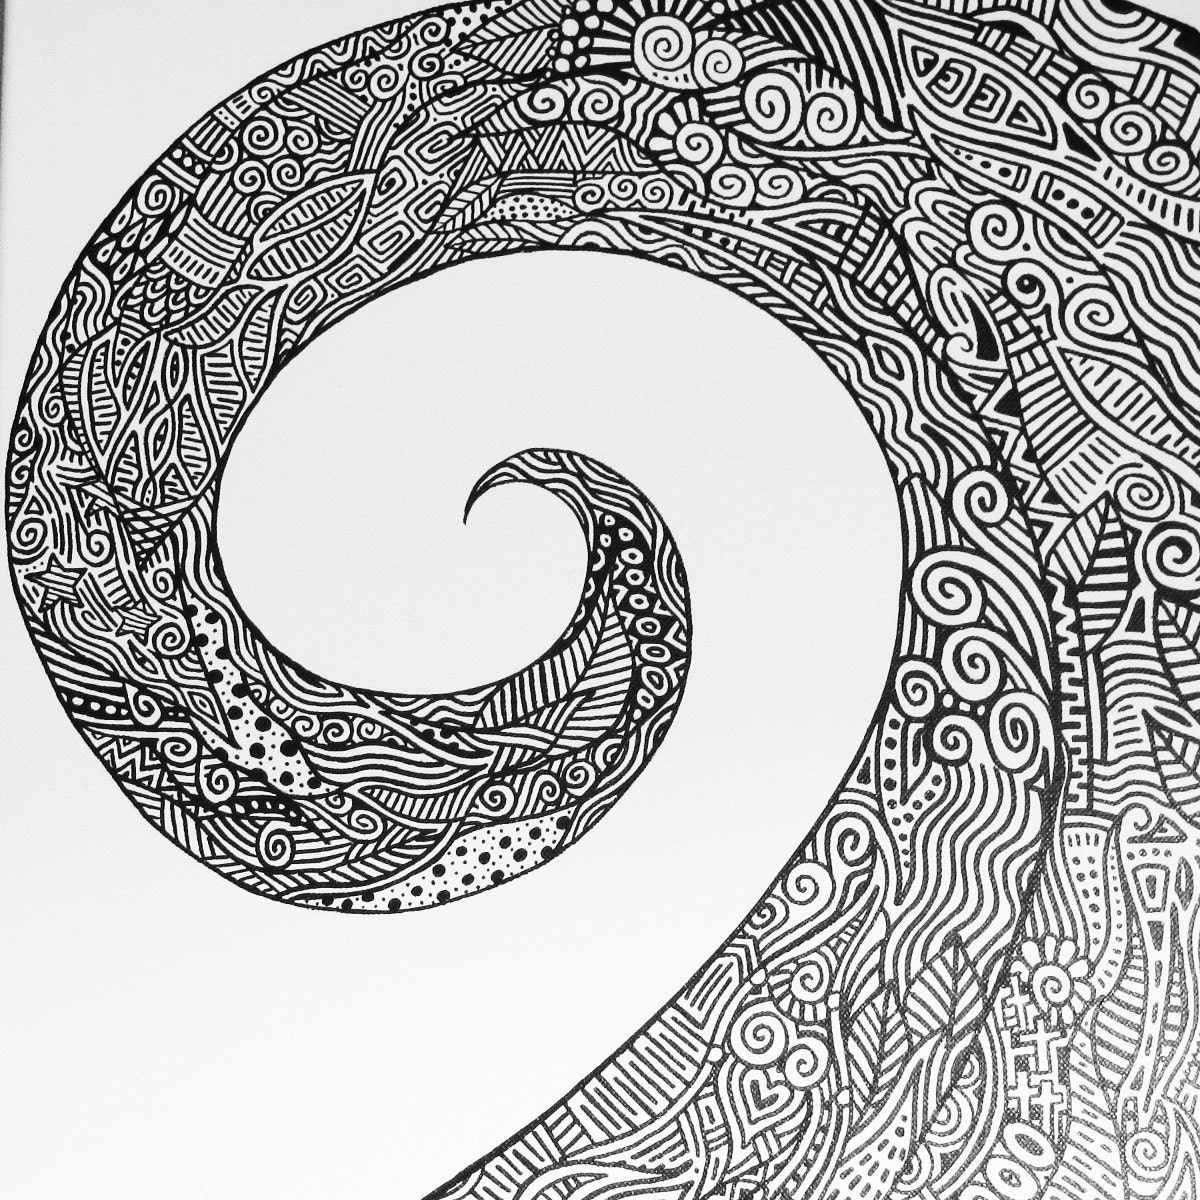 Awesome coloring pages - 47 Best Images About Coloring On Pinterest Dovers Abstract Coloring Pages And Coloring Pages